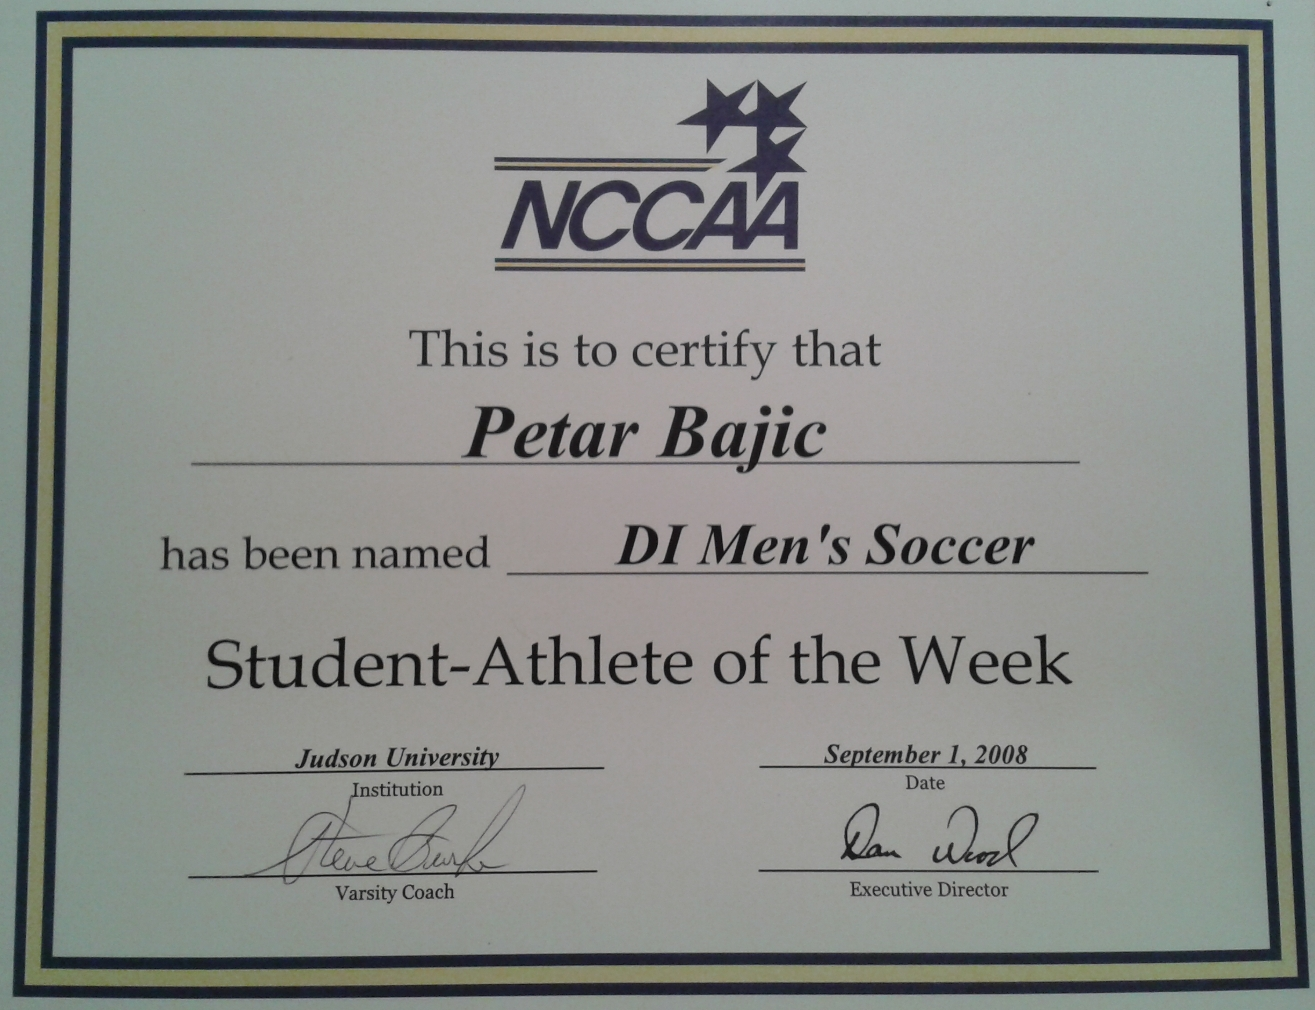 Petar bajic soccer coach petars nccaa student athlete of the week certificate xflitez Choice Image